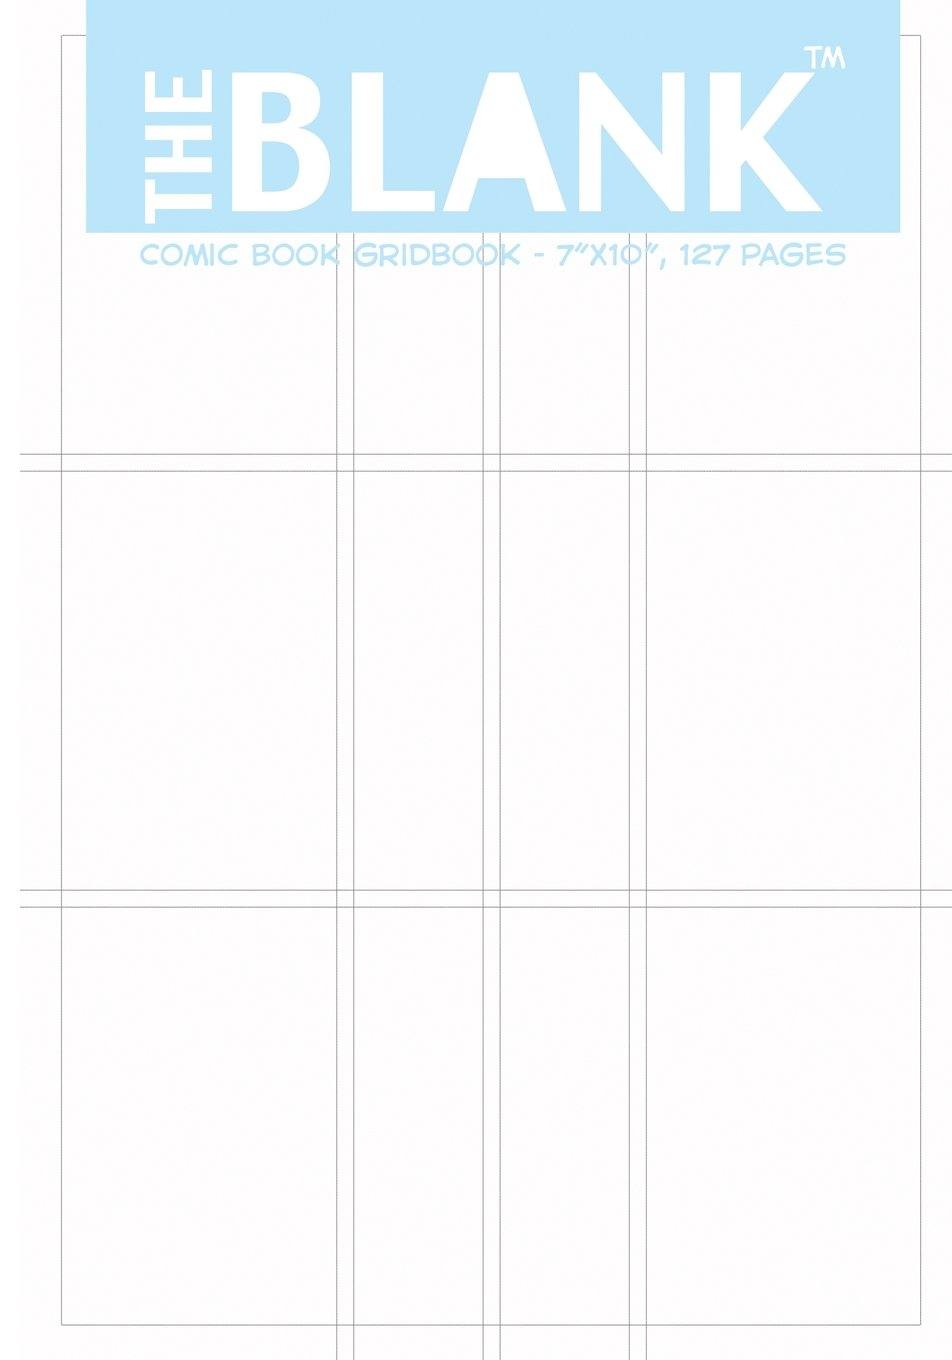 The Blank Comic Book Gridbook 7